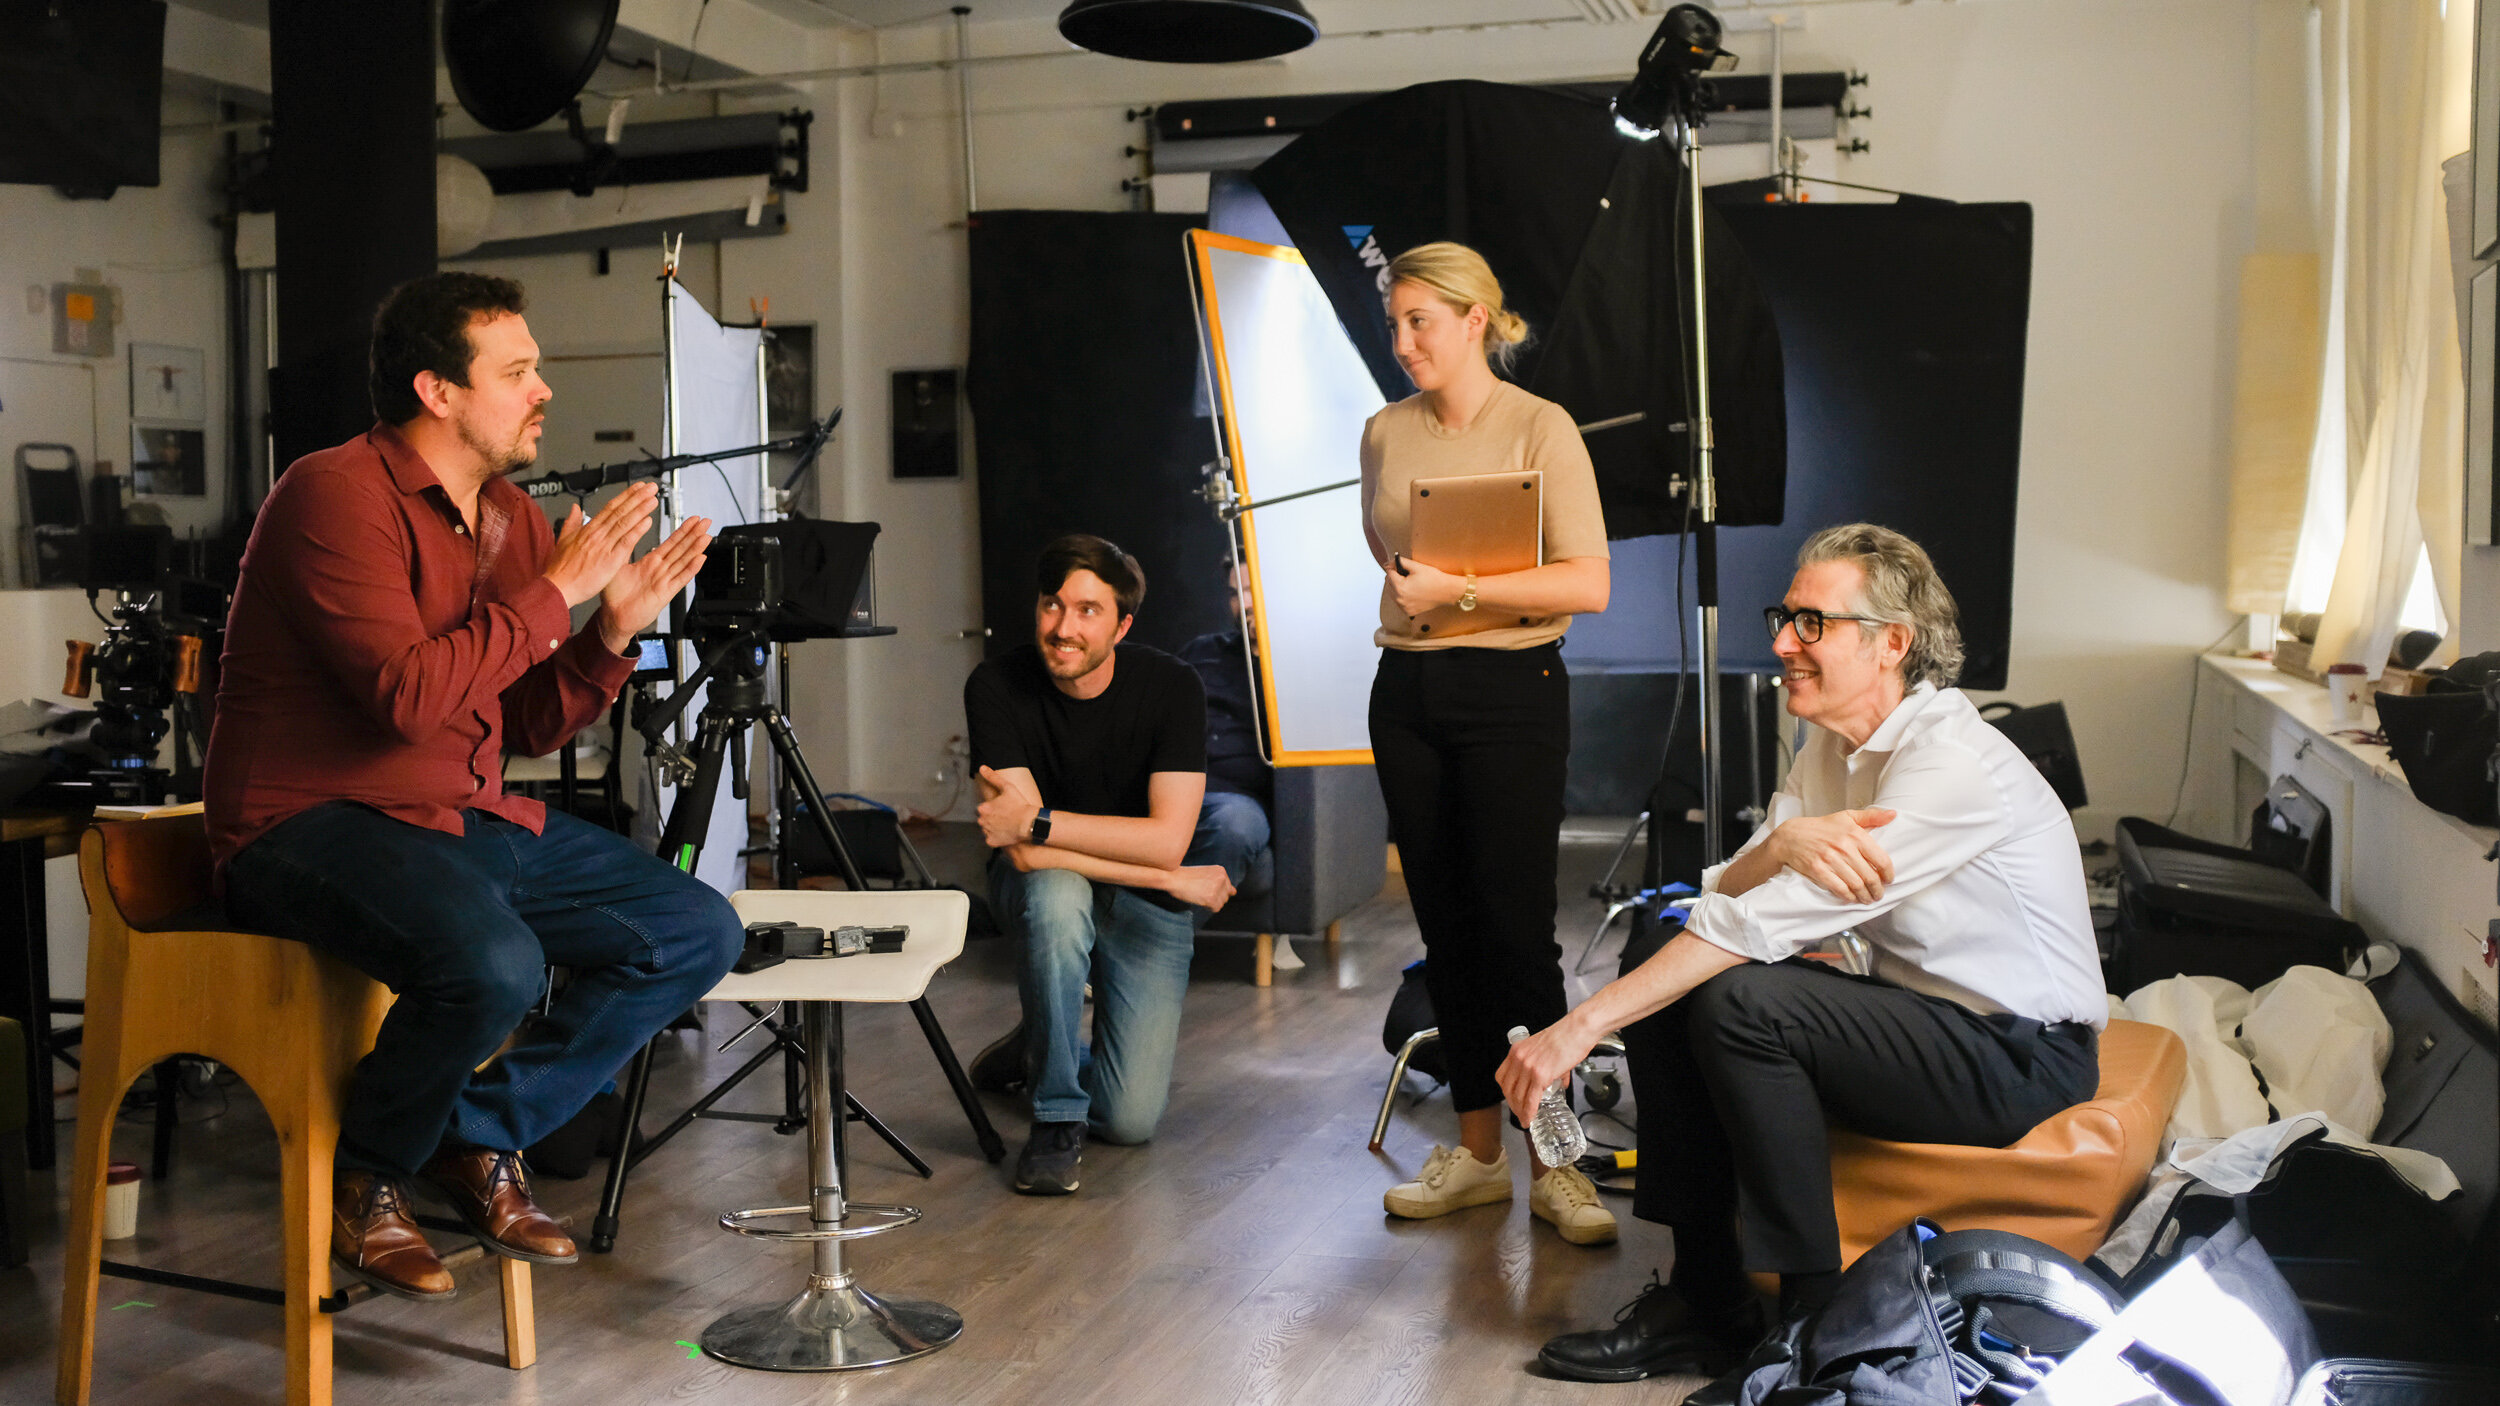 A BTS image of our interview with Ira Glass. You can see our setup to the back left of everybody talking.